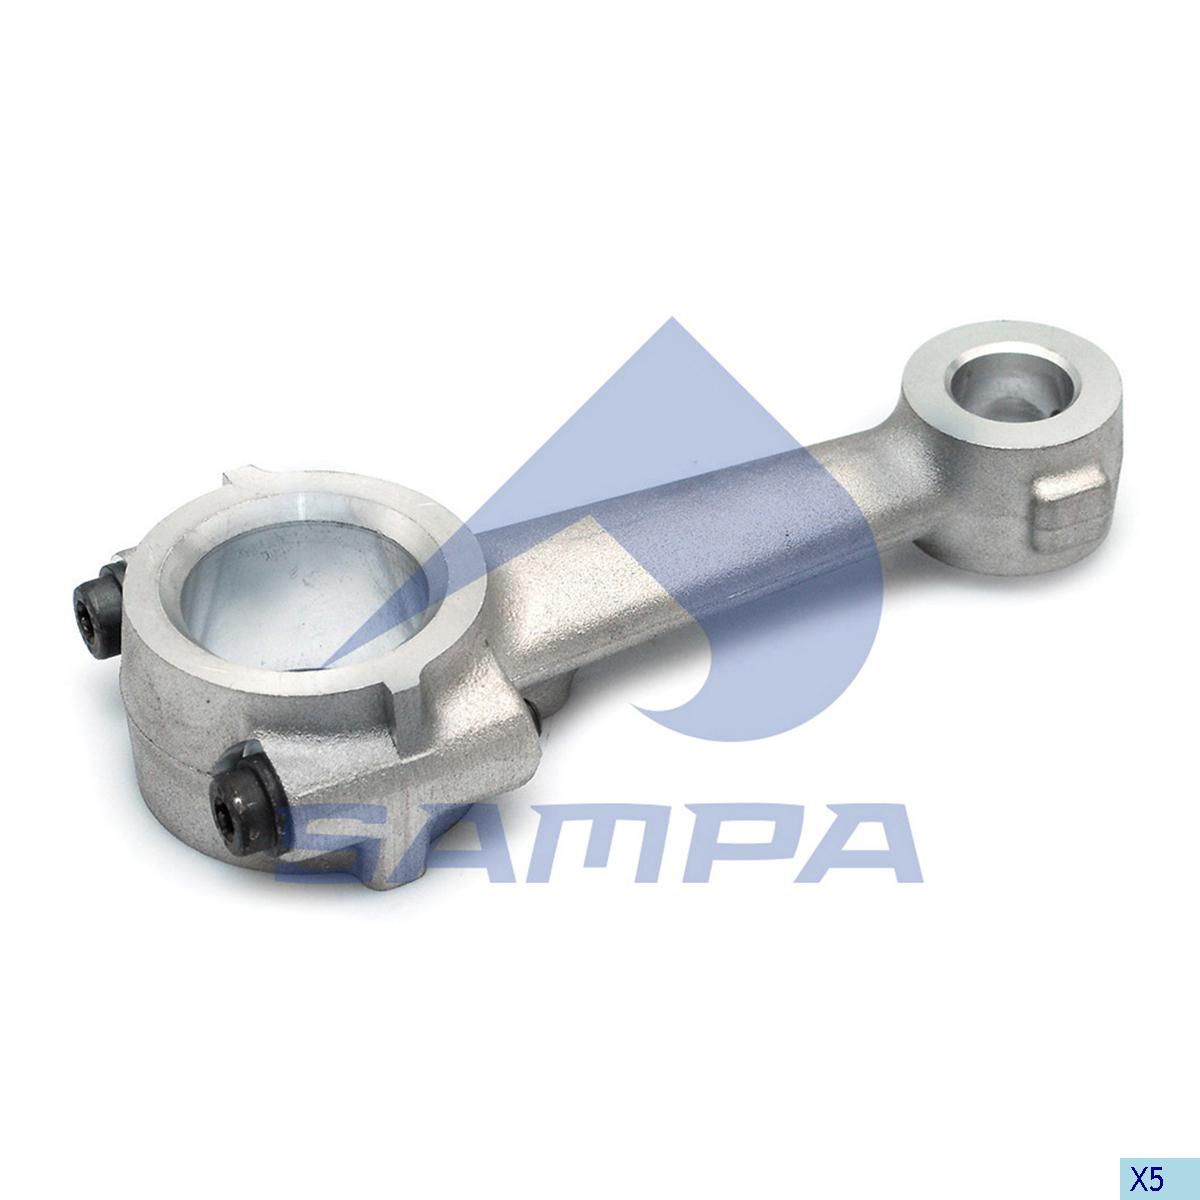 Connecting Rod, Piston, Scania, Compressed Air System